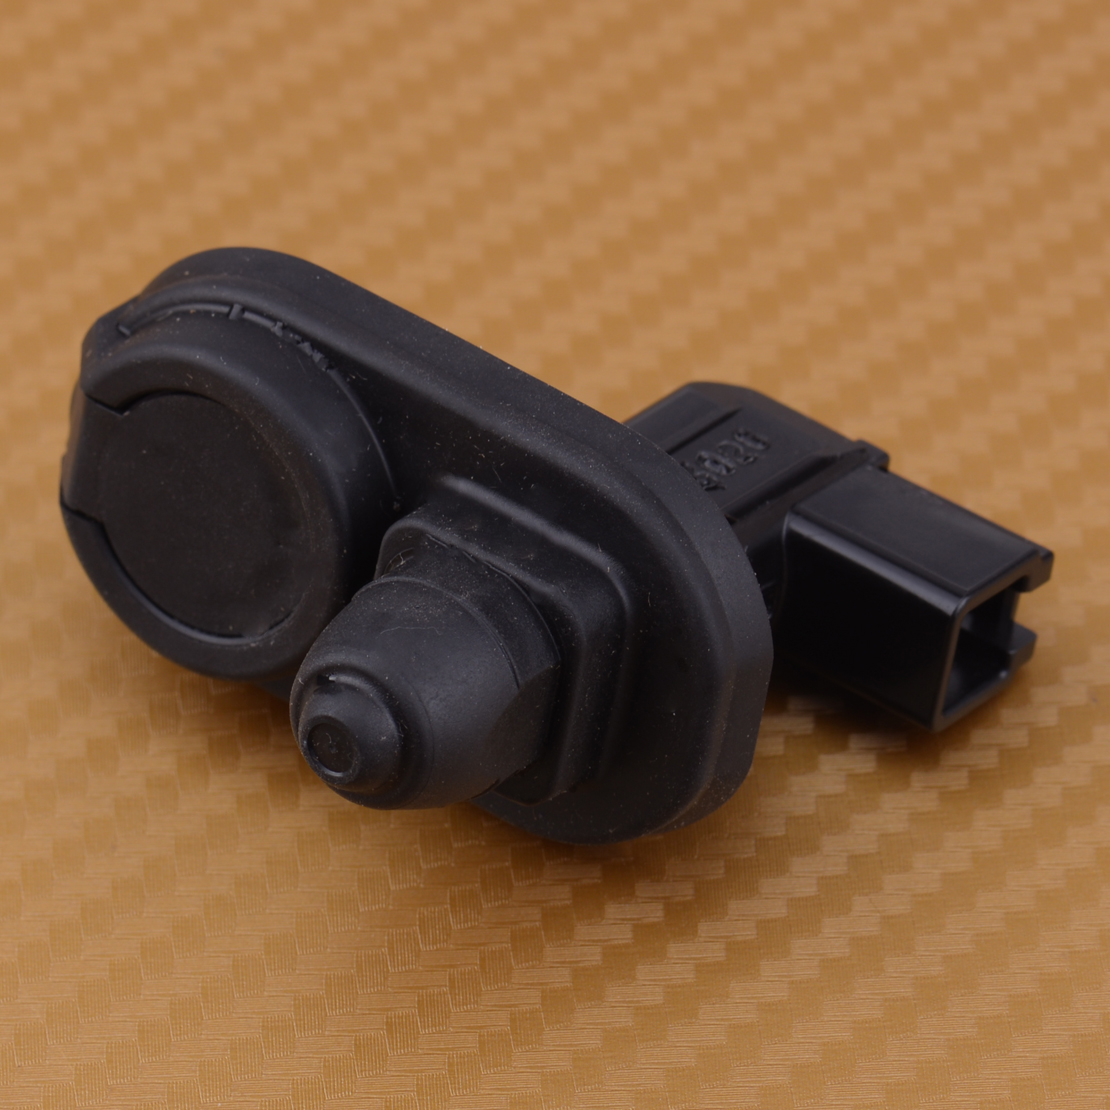 beler Car Black <font><b>Door</b></font> Jamb Light Lamp Switch Fit For Honda Accord <font><b>Civic</b></font> CR-V Crosstour Element Odyssey image